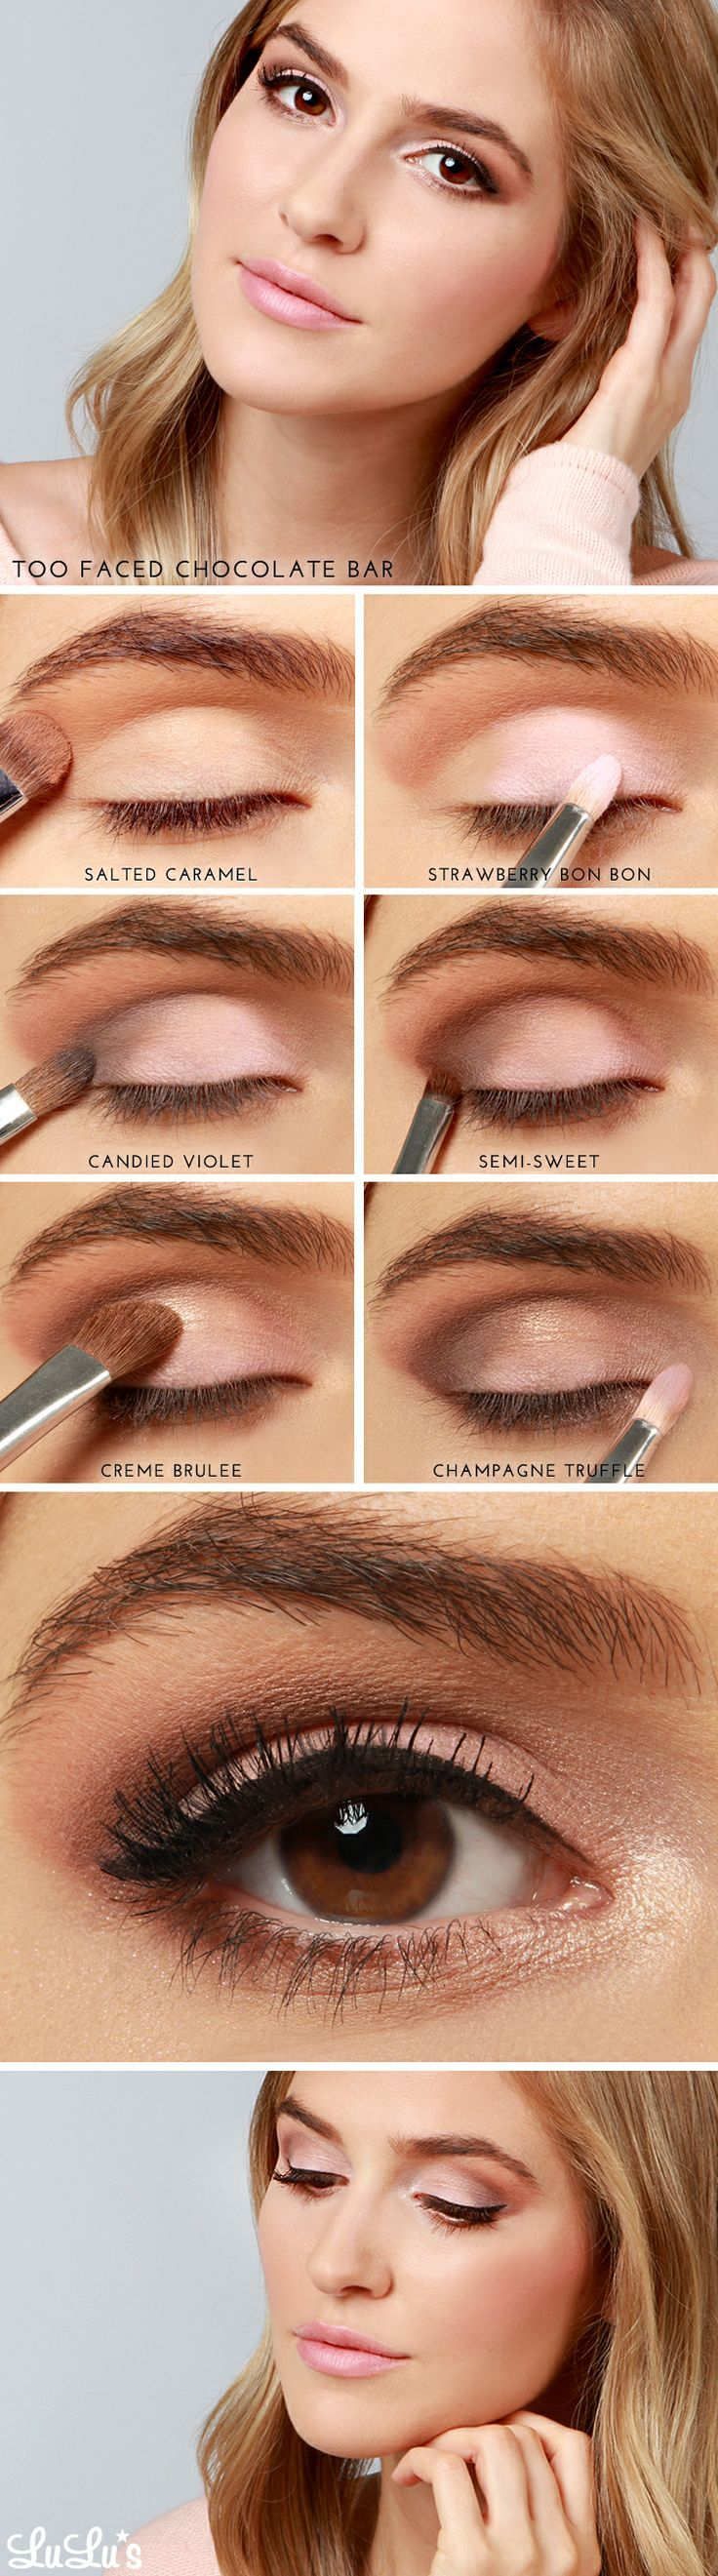 Shimmer Makeup Tutorials: Fresh Coffee // I like the subtle look of this.